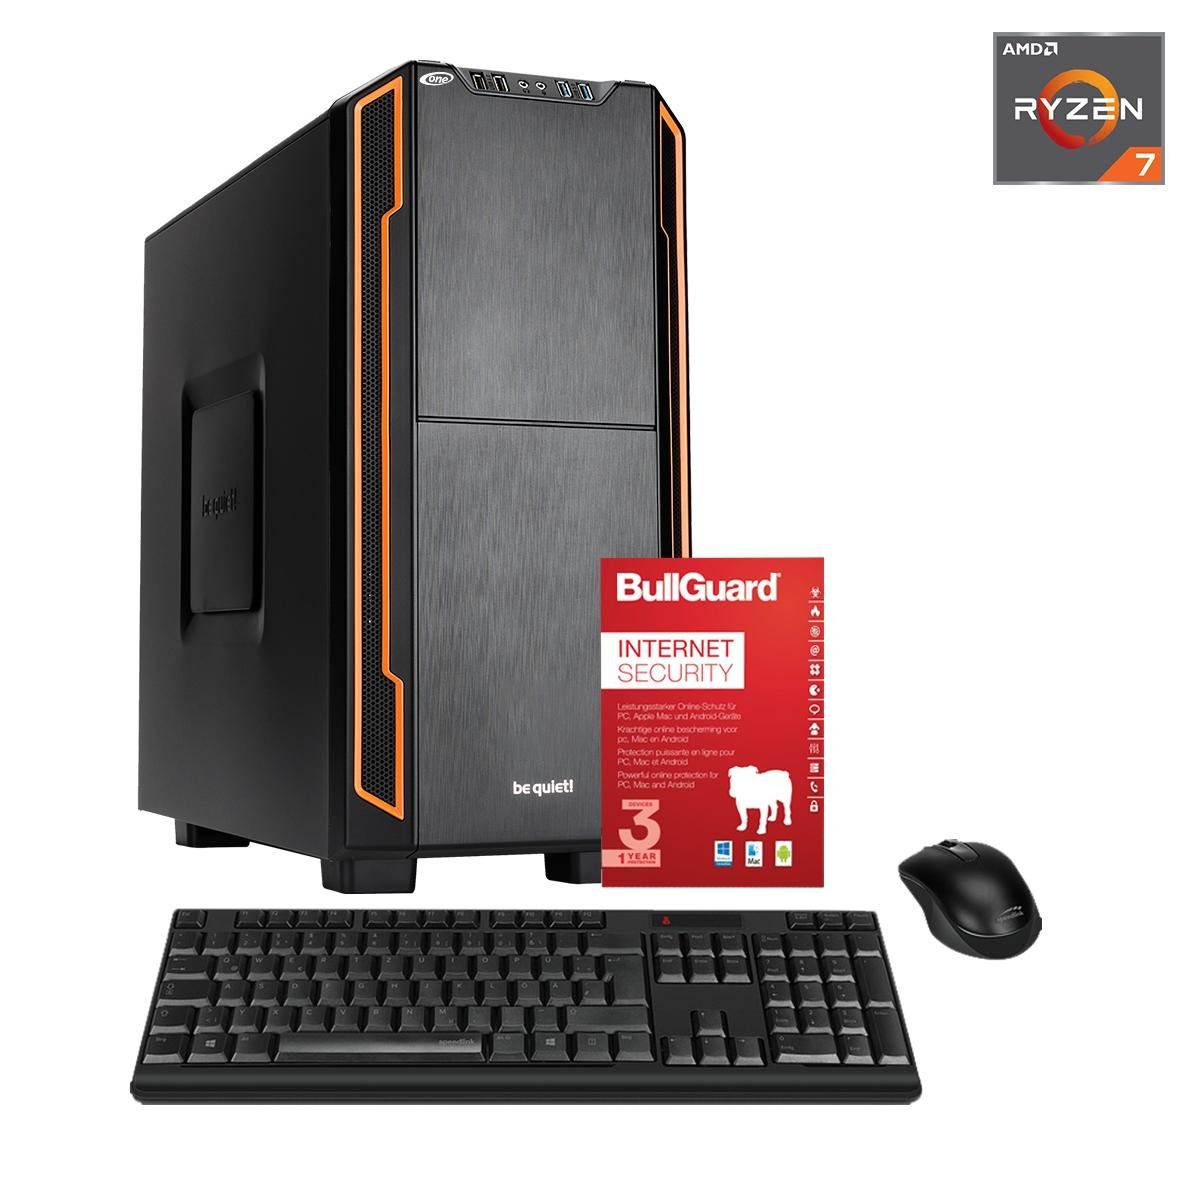 ONE PC, Ryzen 7 2700, GeForce GT 1030, 8GB DDR4 RAM »PC 44091«